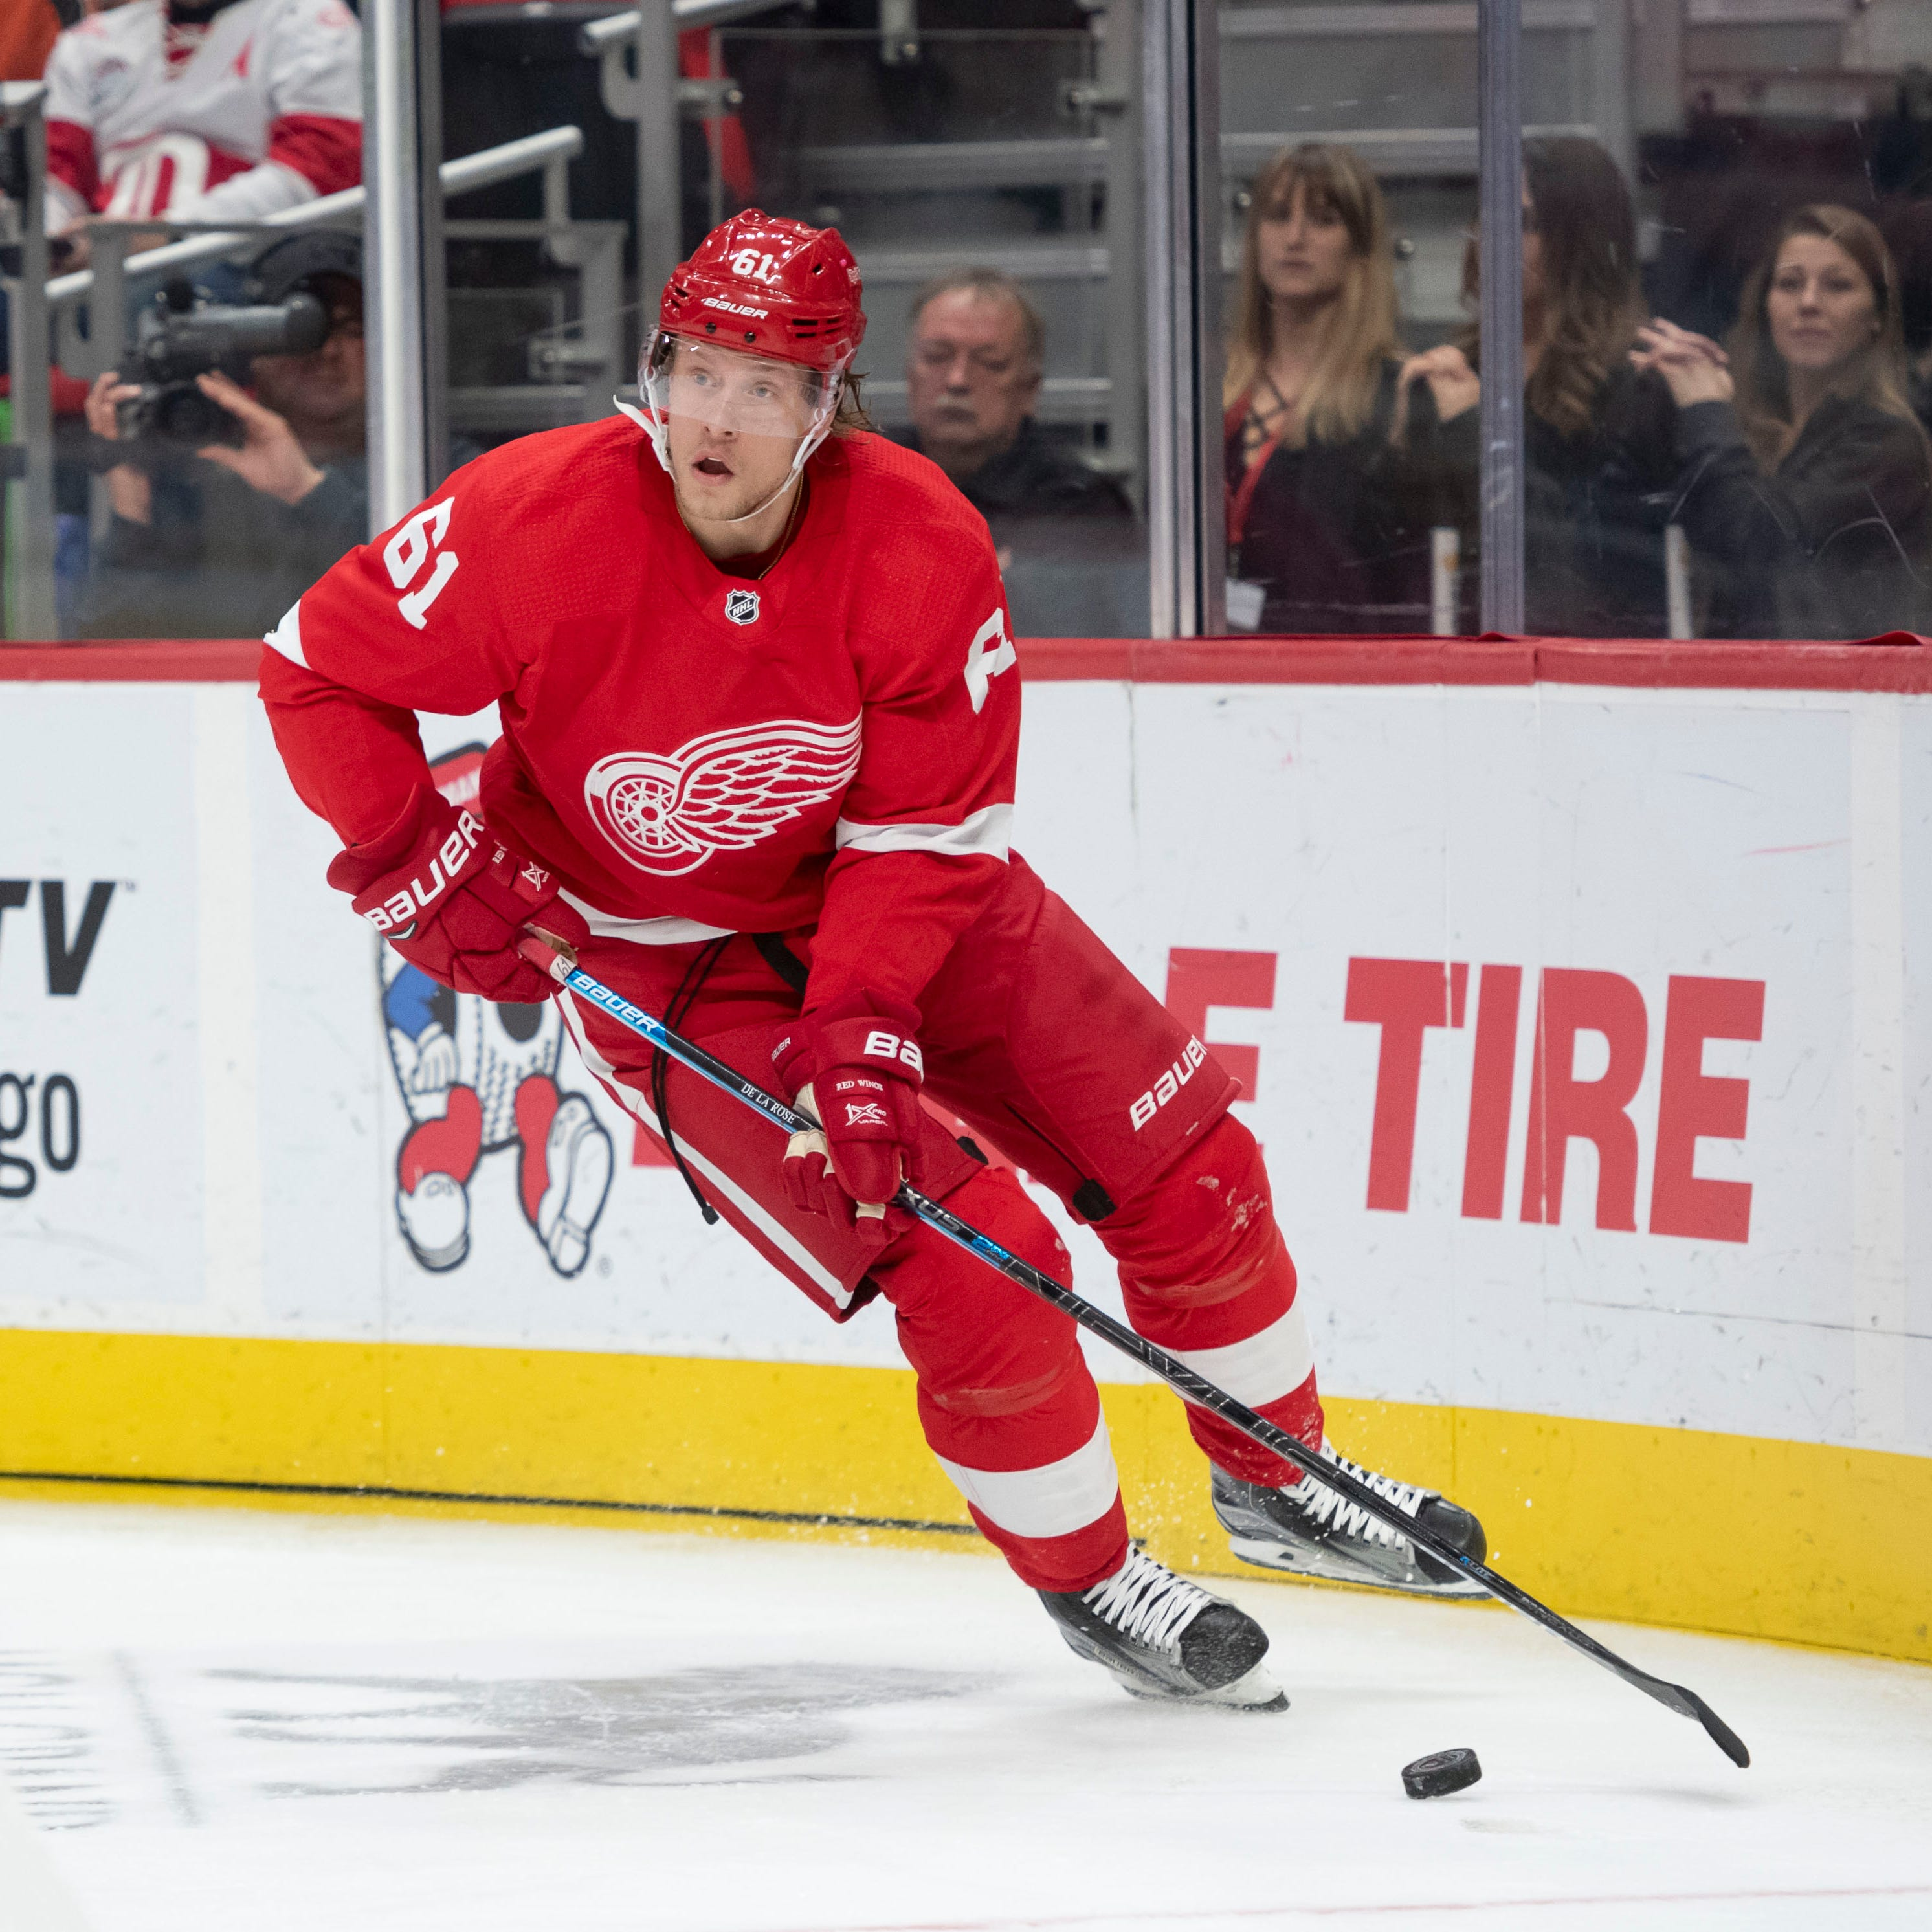 Red Wings cautious with Jacob de la Rose after heart scare